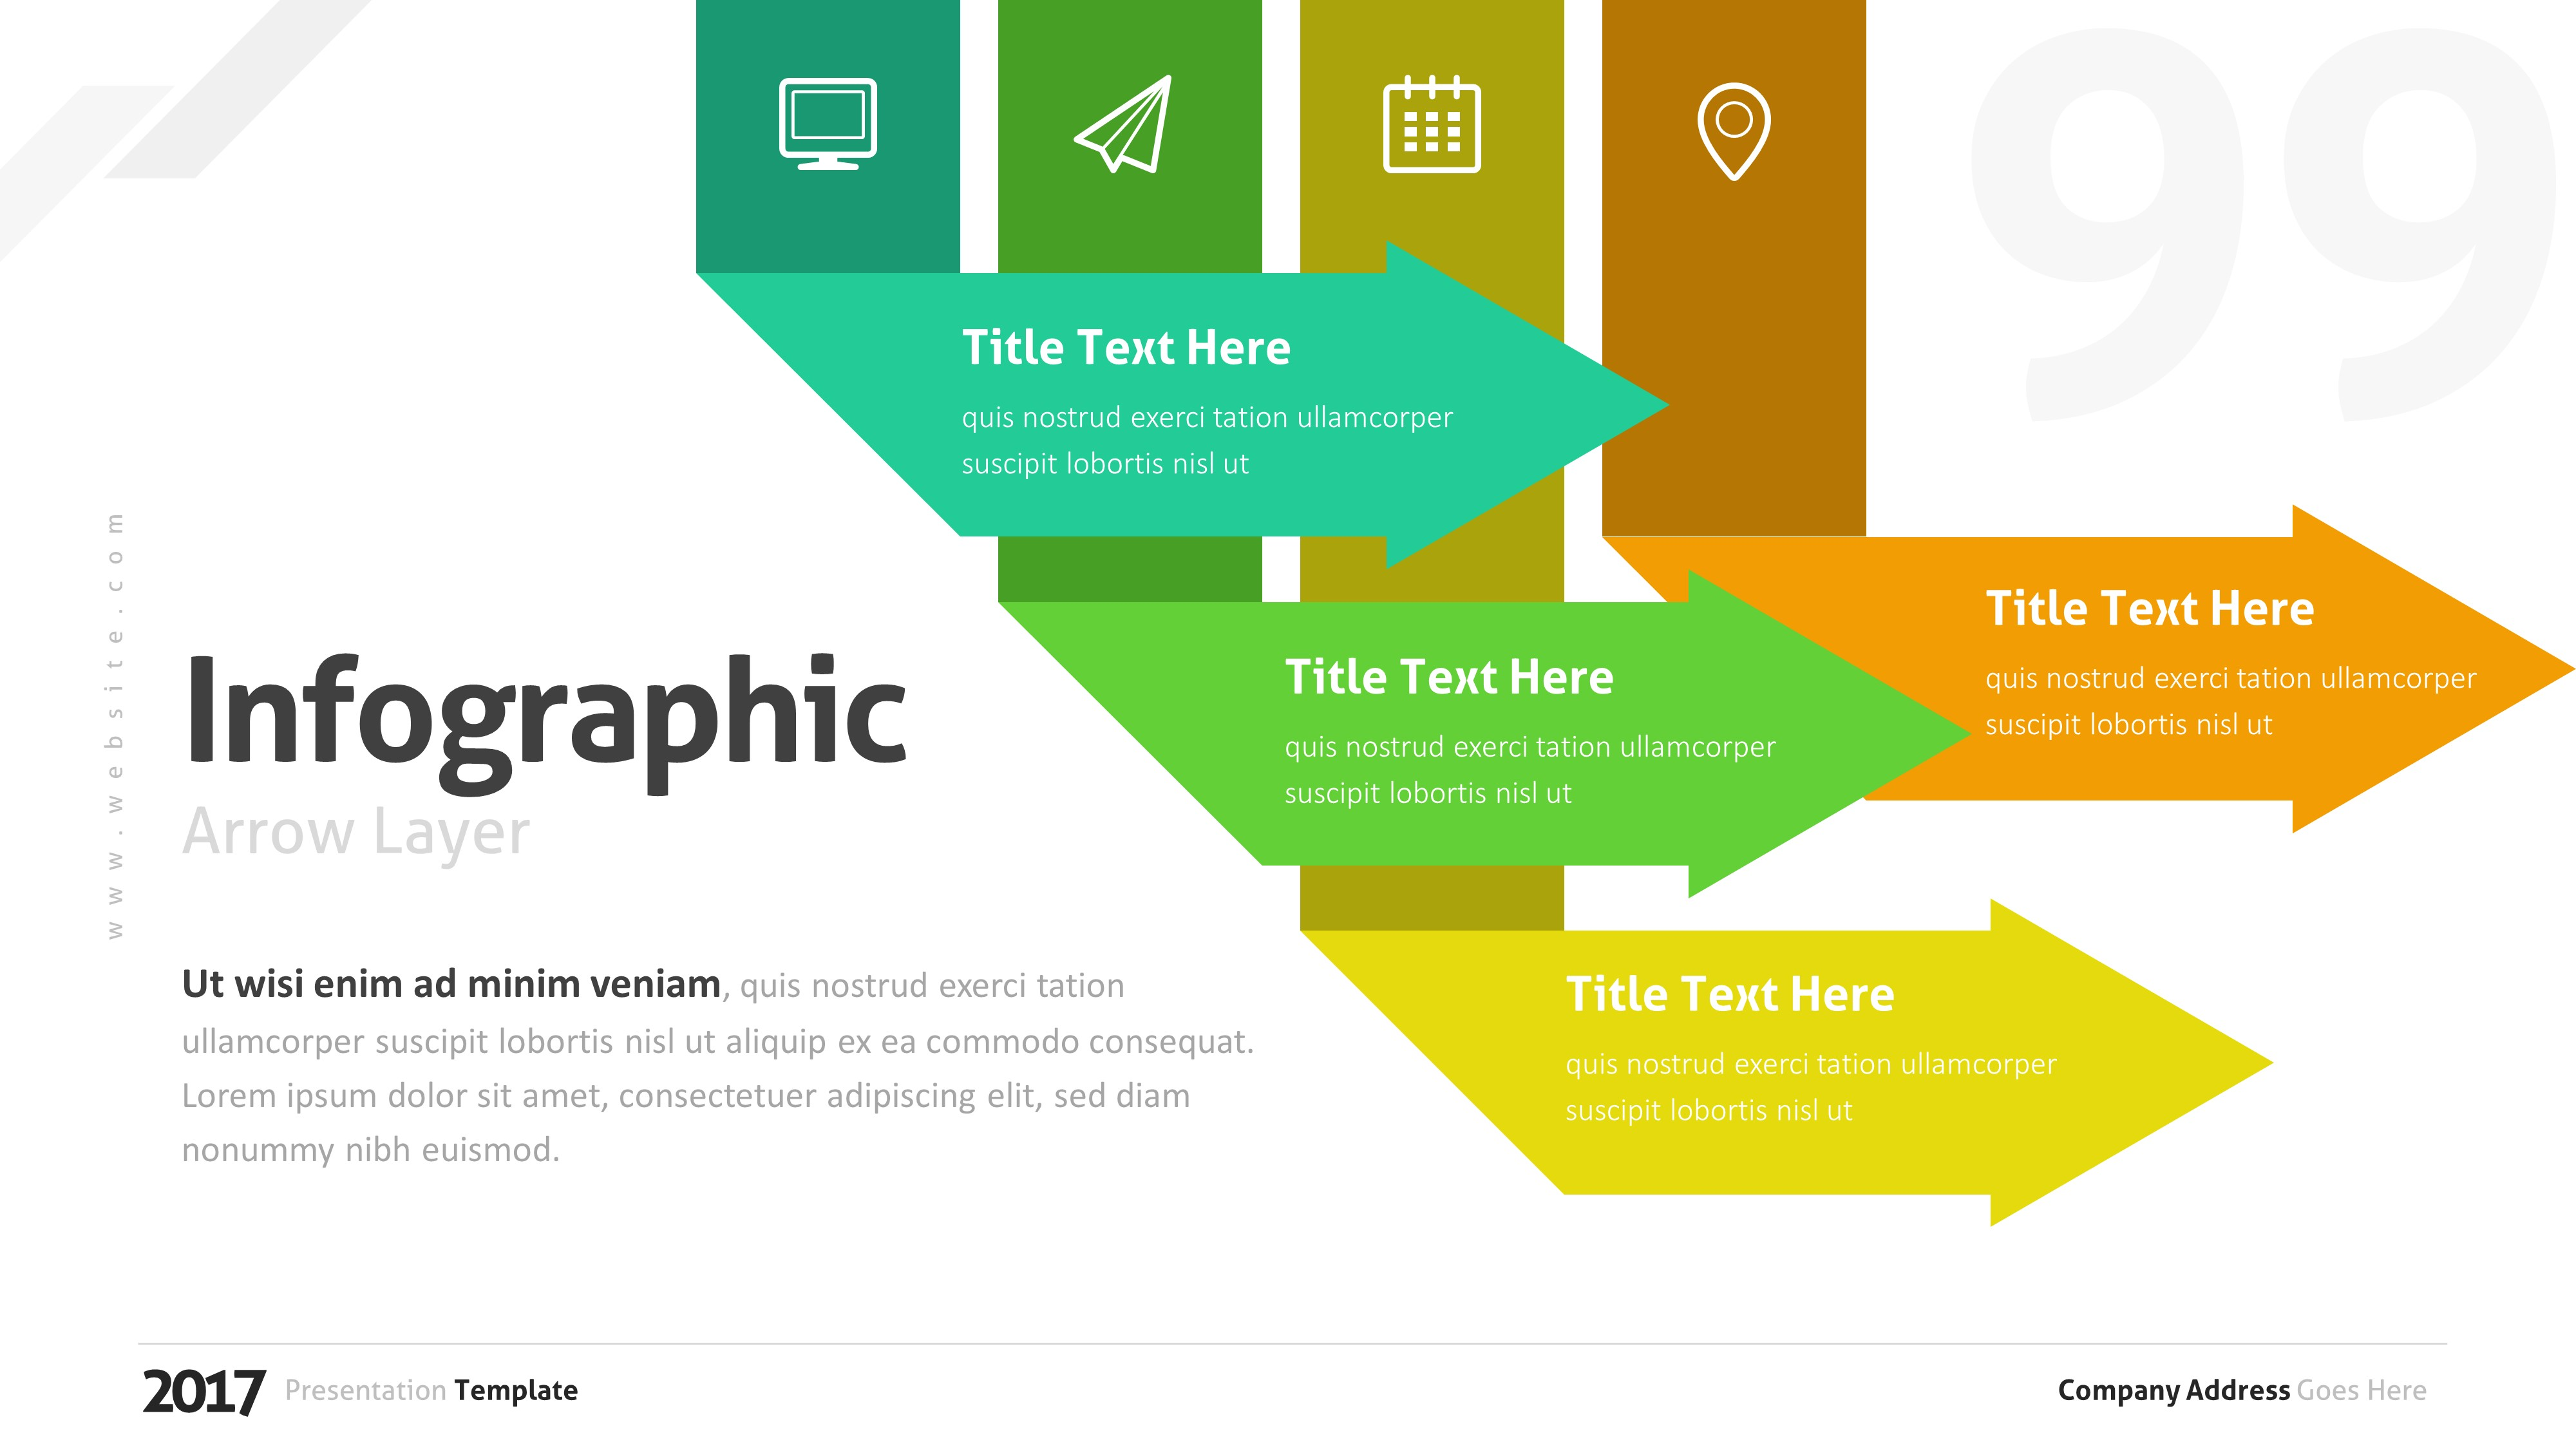 2017 project presentation template by brandearth